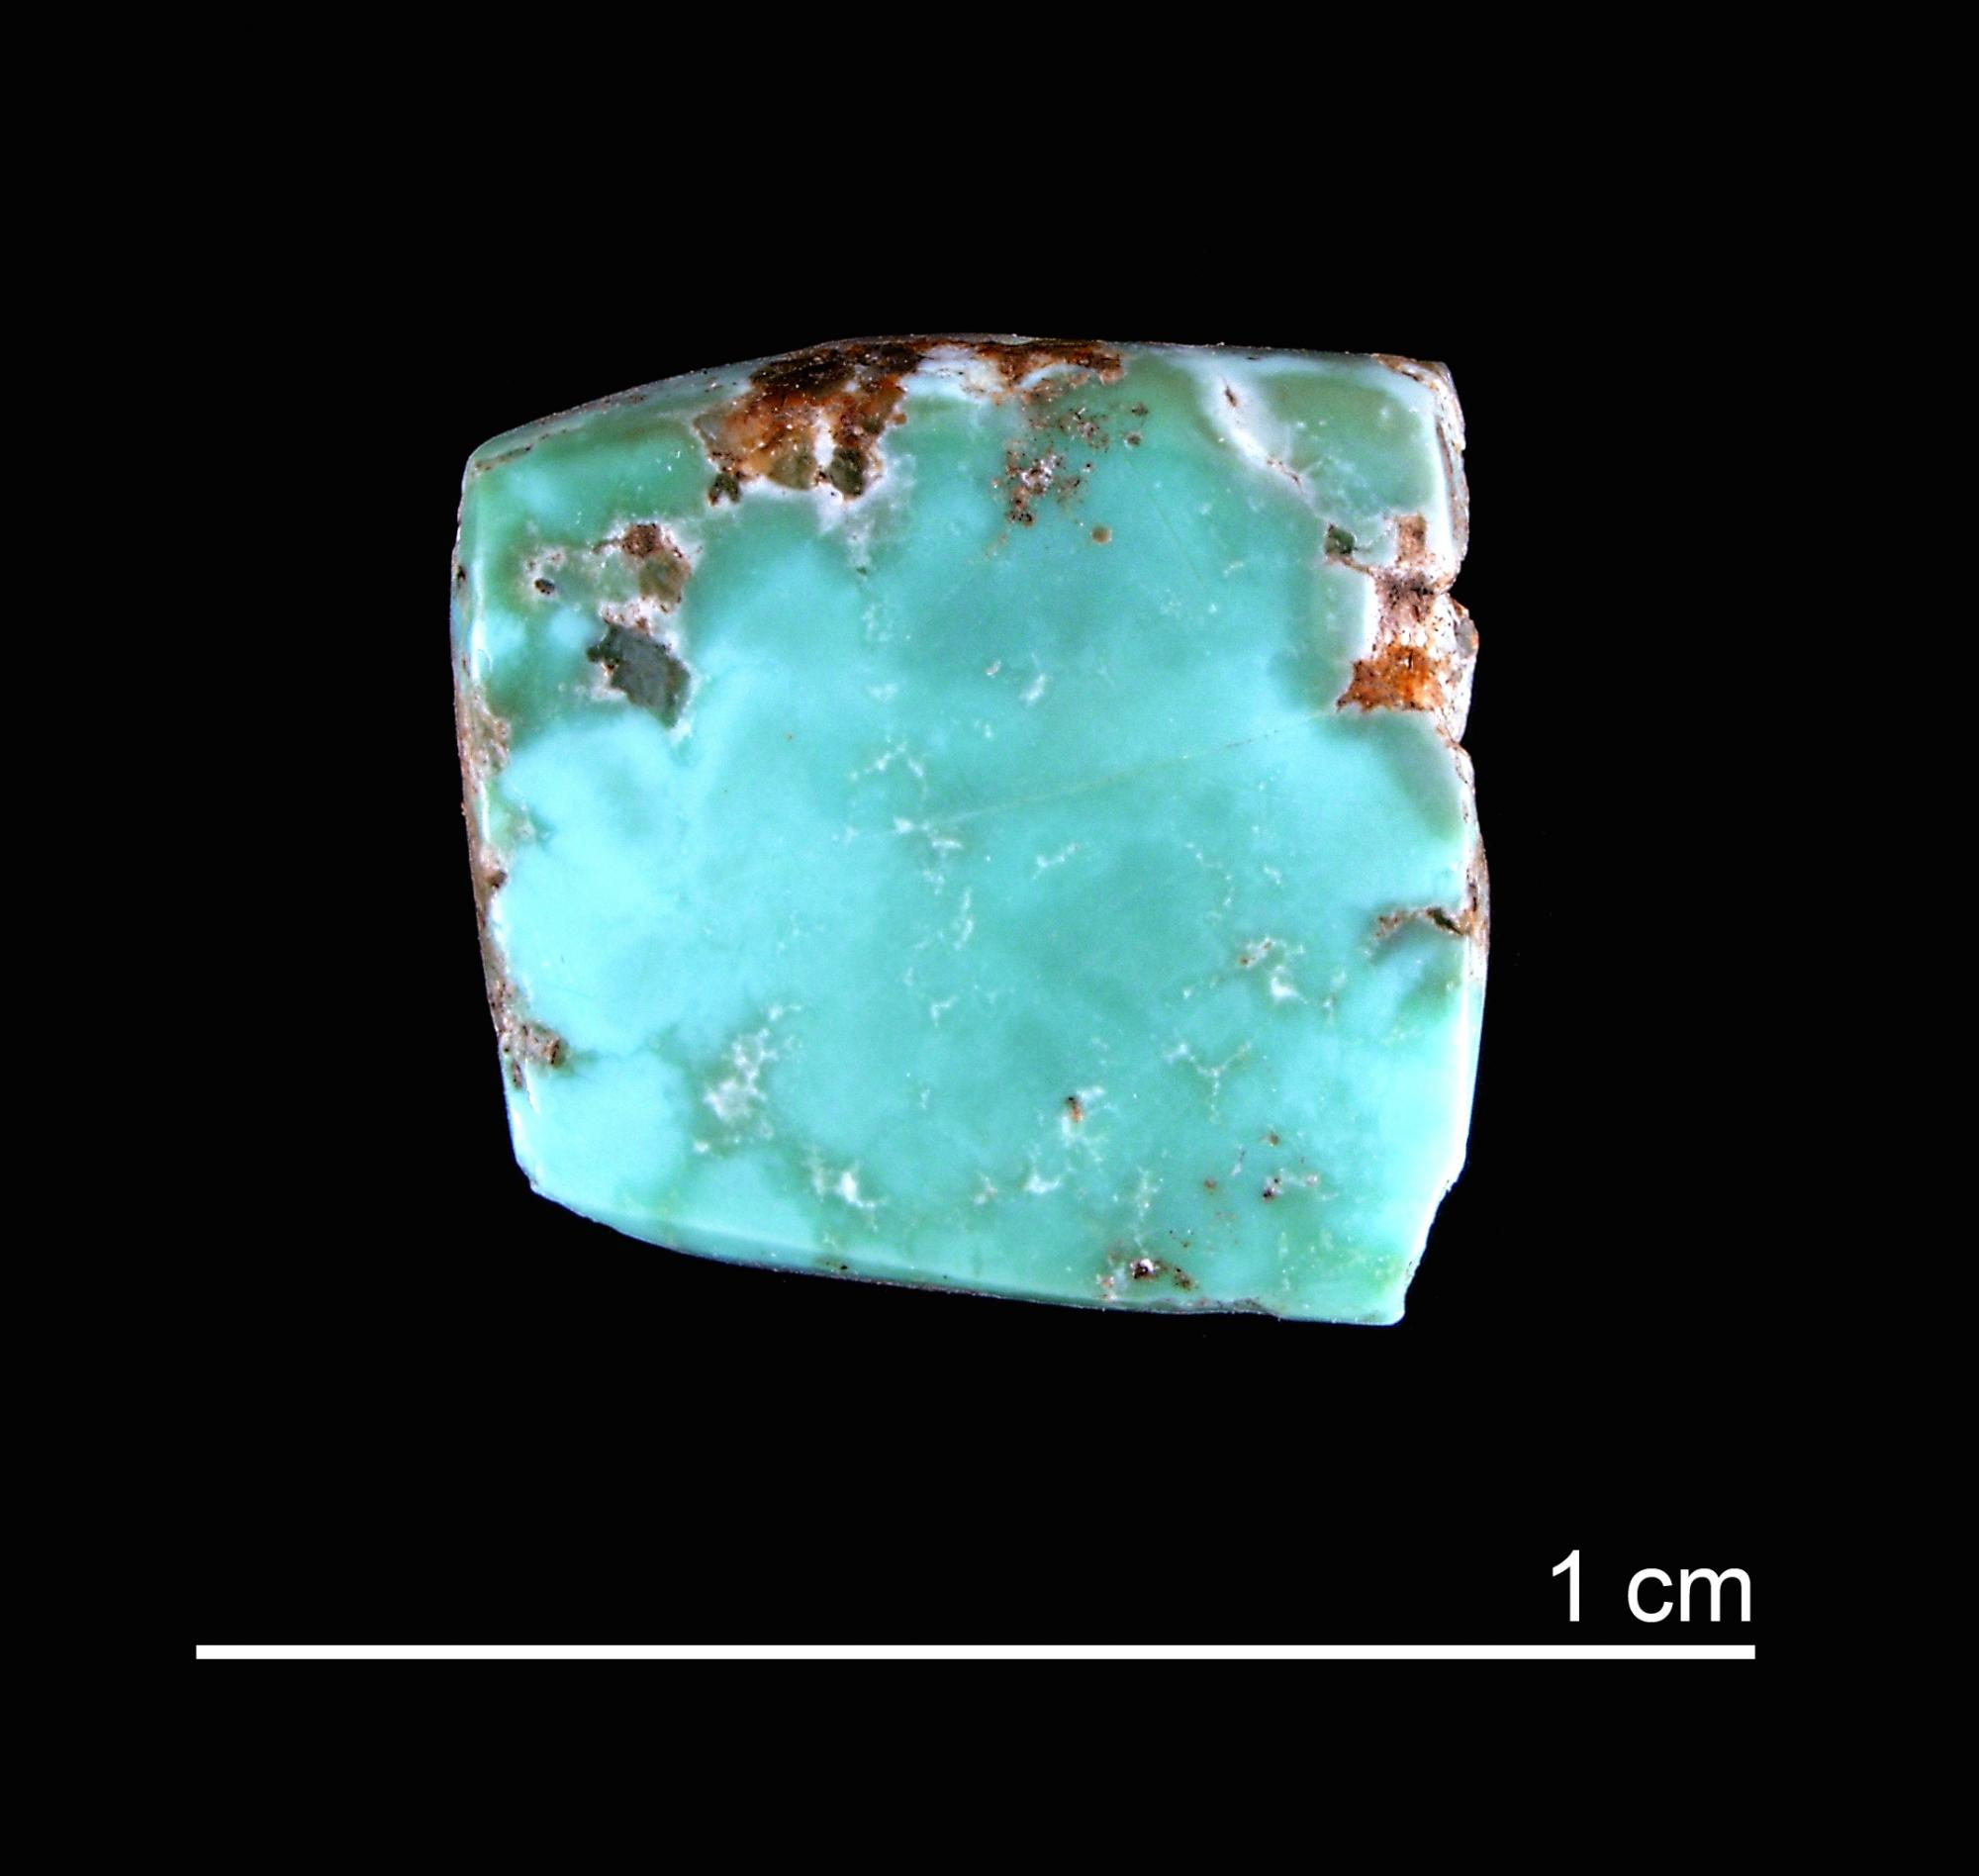 Based on isotopic analysis, researchers were able to match samples from Canyon Creek to several turquoise artifacts, including this one, that are currently housed in museums.